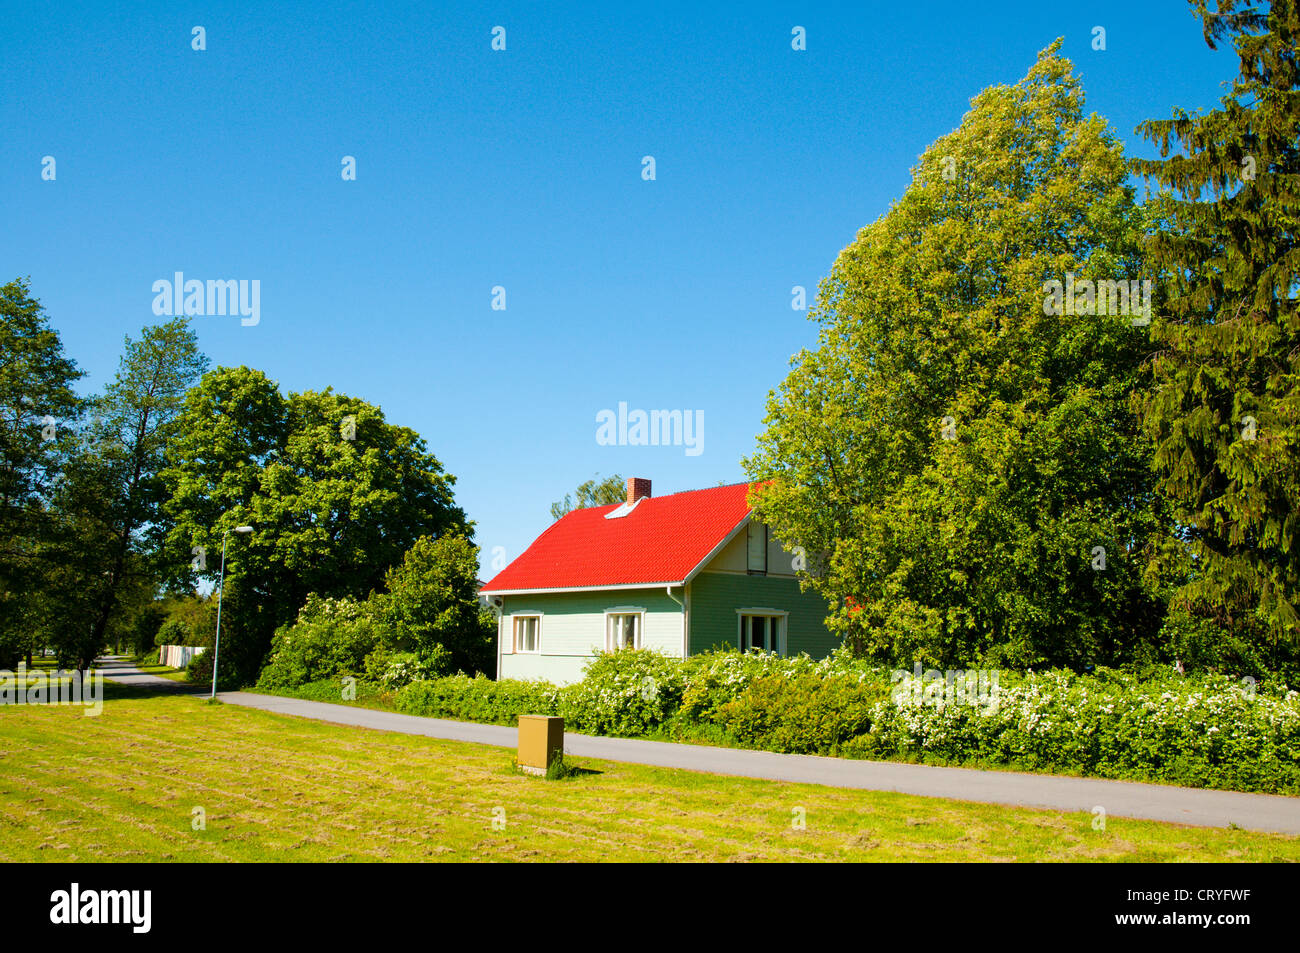 Residential detached wooden house by park in Toejoki district Pori Finland Europe - Stock Image